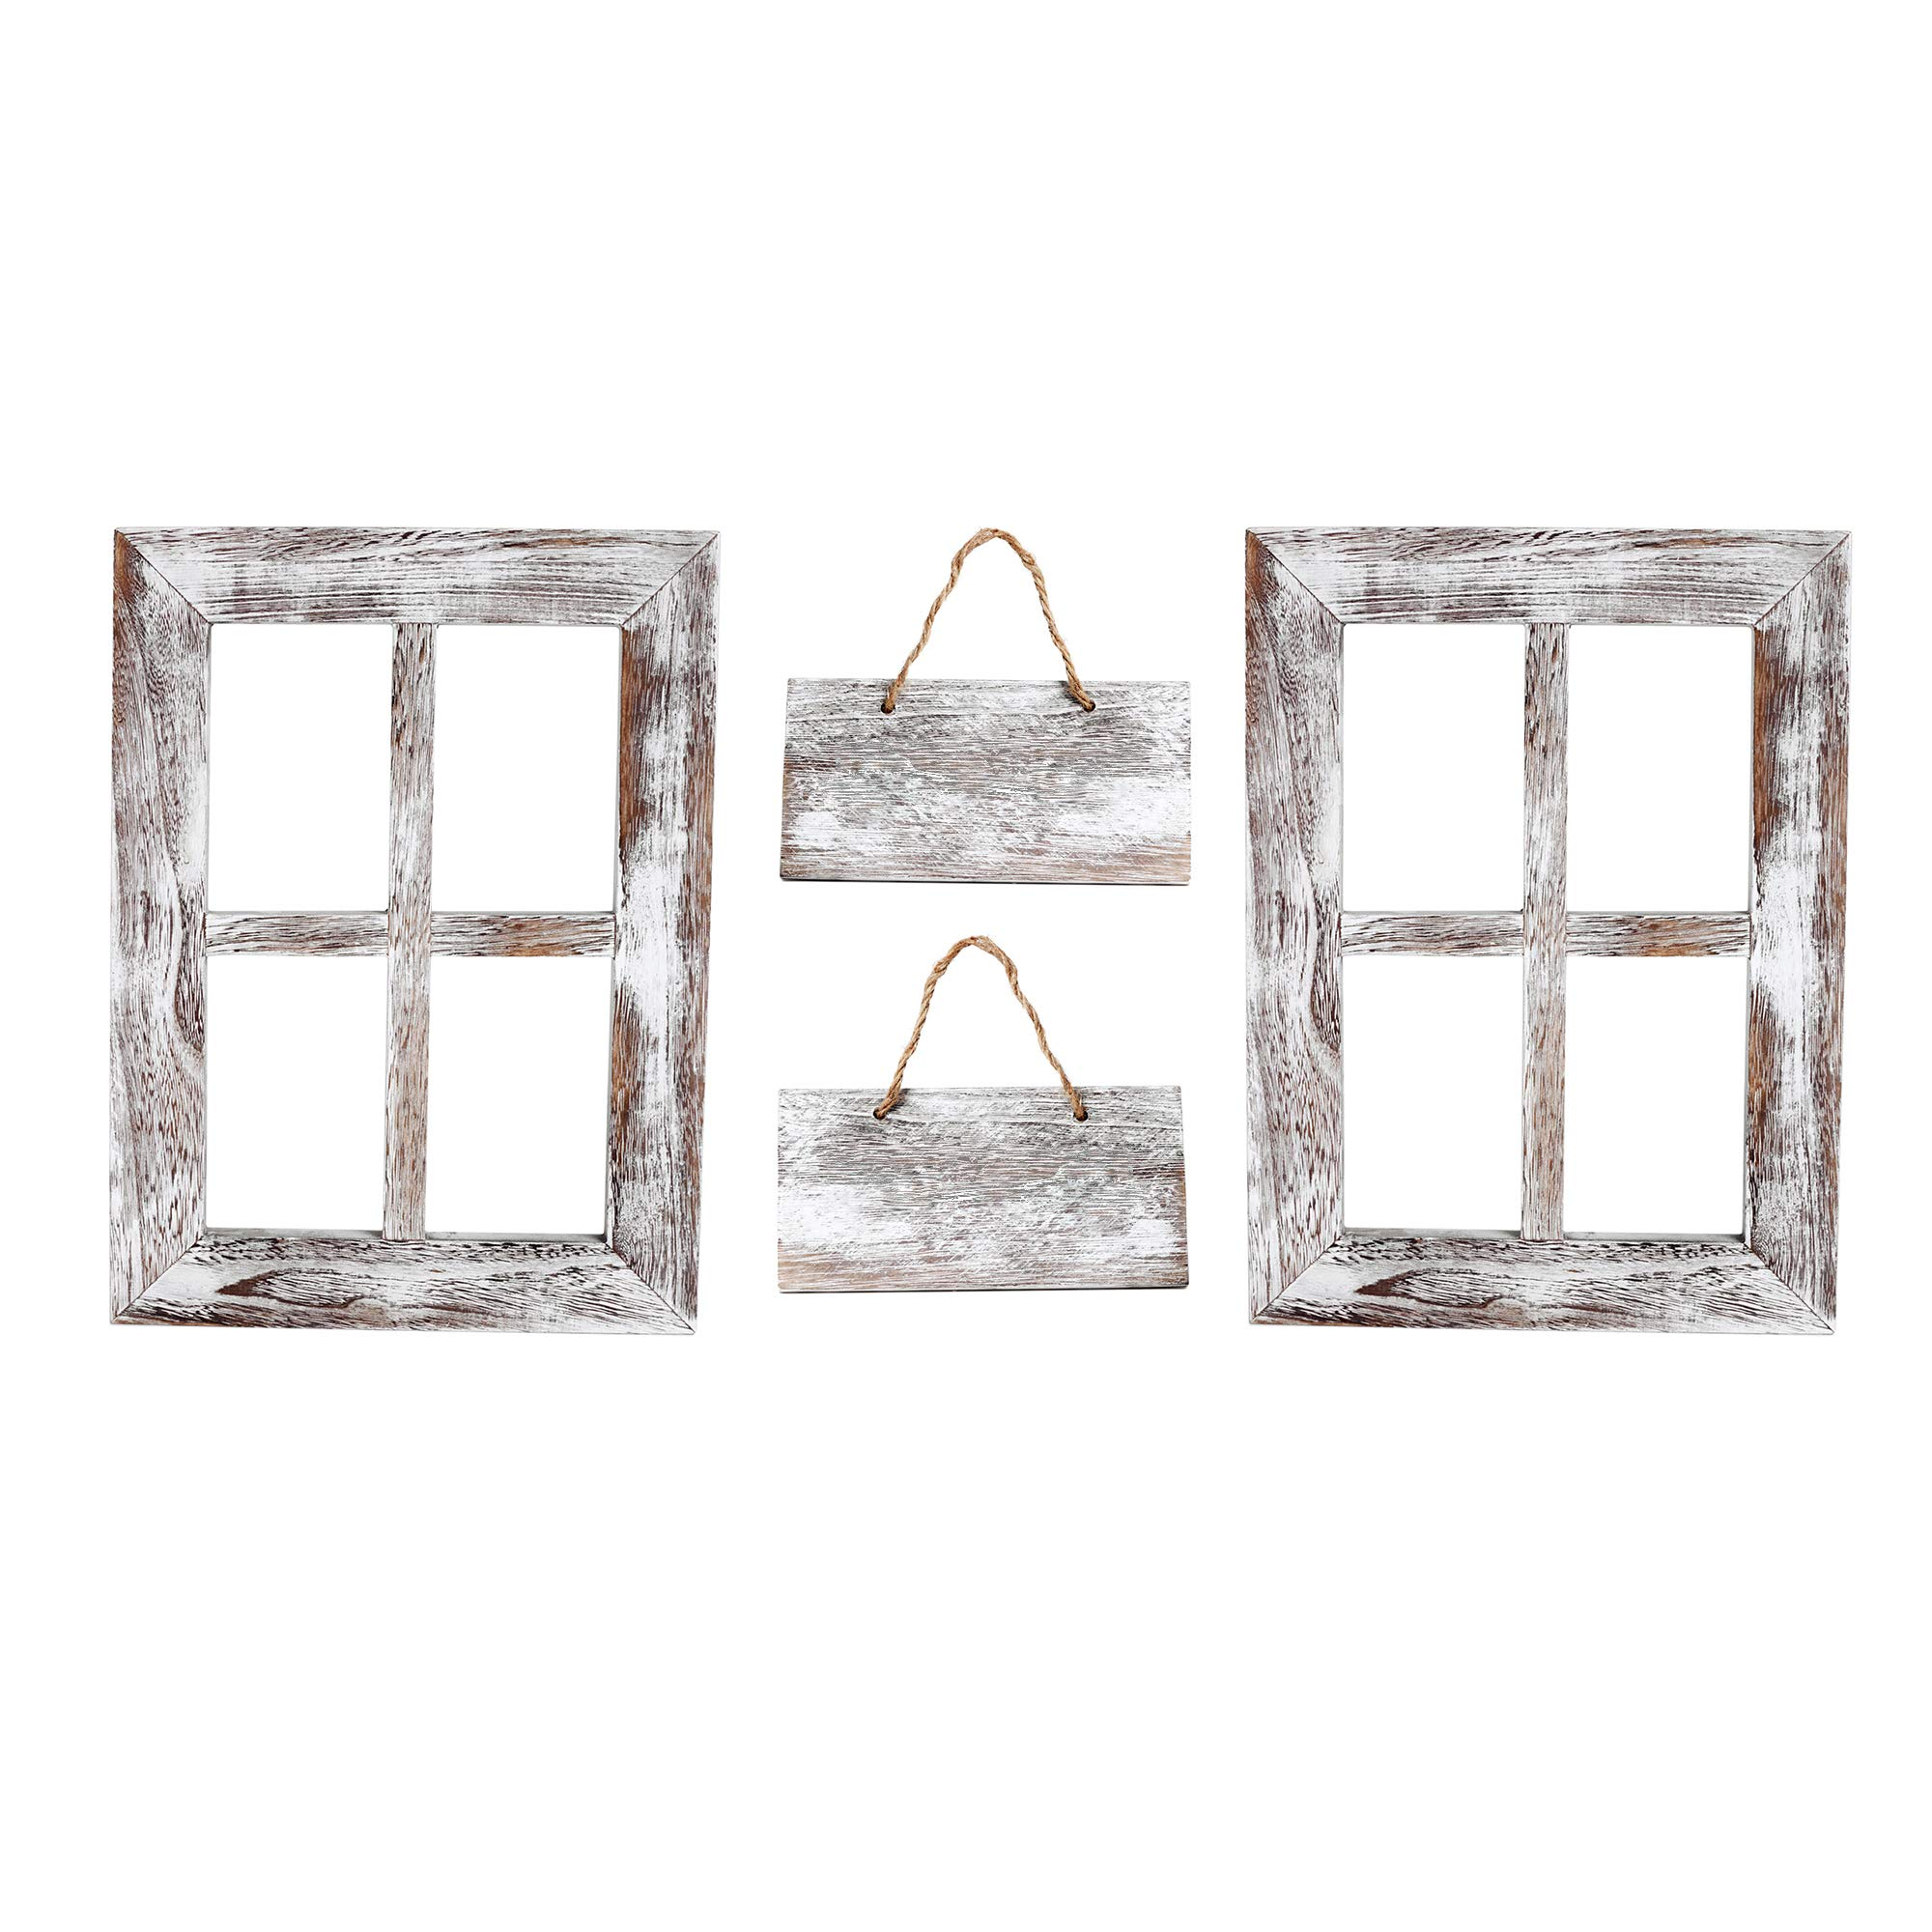 Kenley Rustic Window Frames - Wall Mount Wooden Frame Set with Signs - Farmhouse Wall Decor - Vintage Hand Crafted Wood Pane 11x15 Inches - Primitive Country Decorations by Kenley